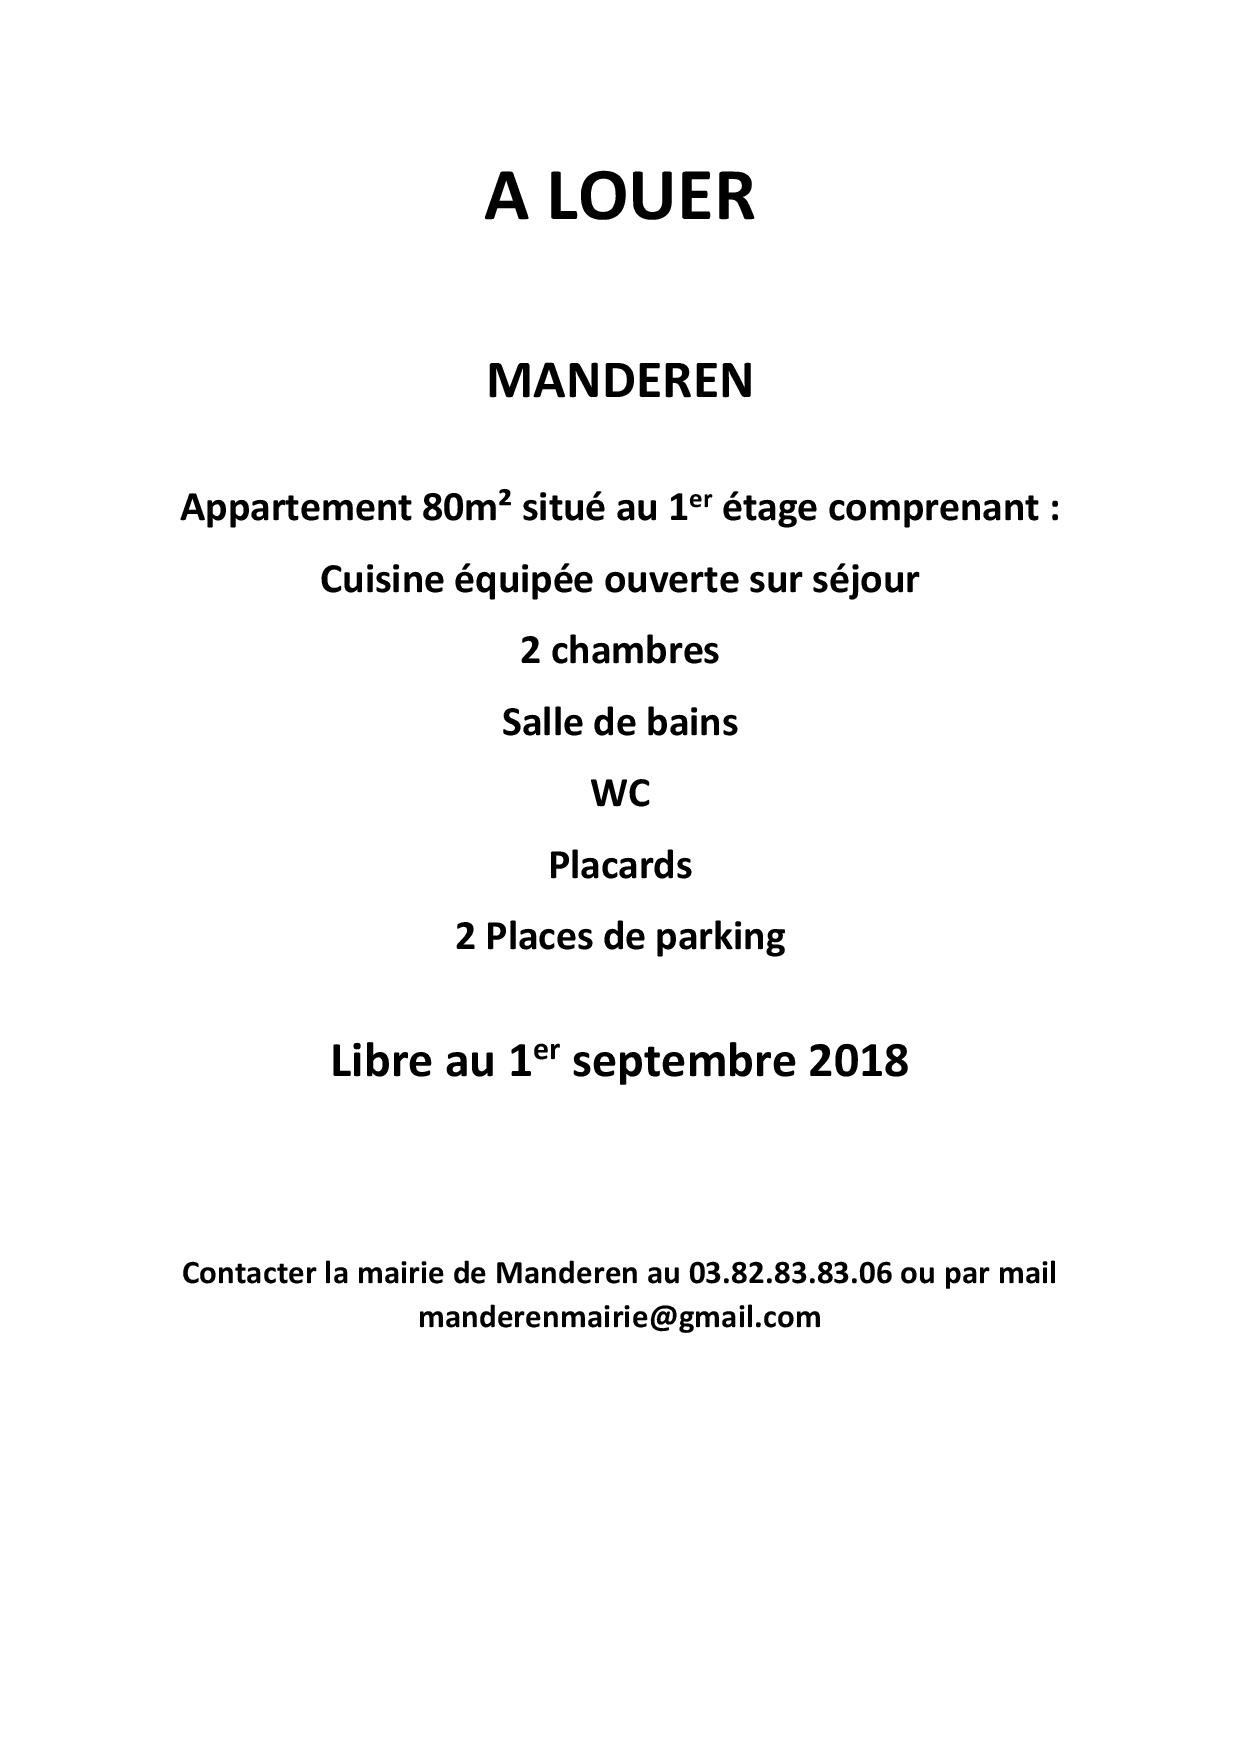 Annonce location appartement page 001